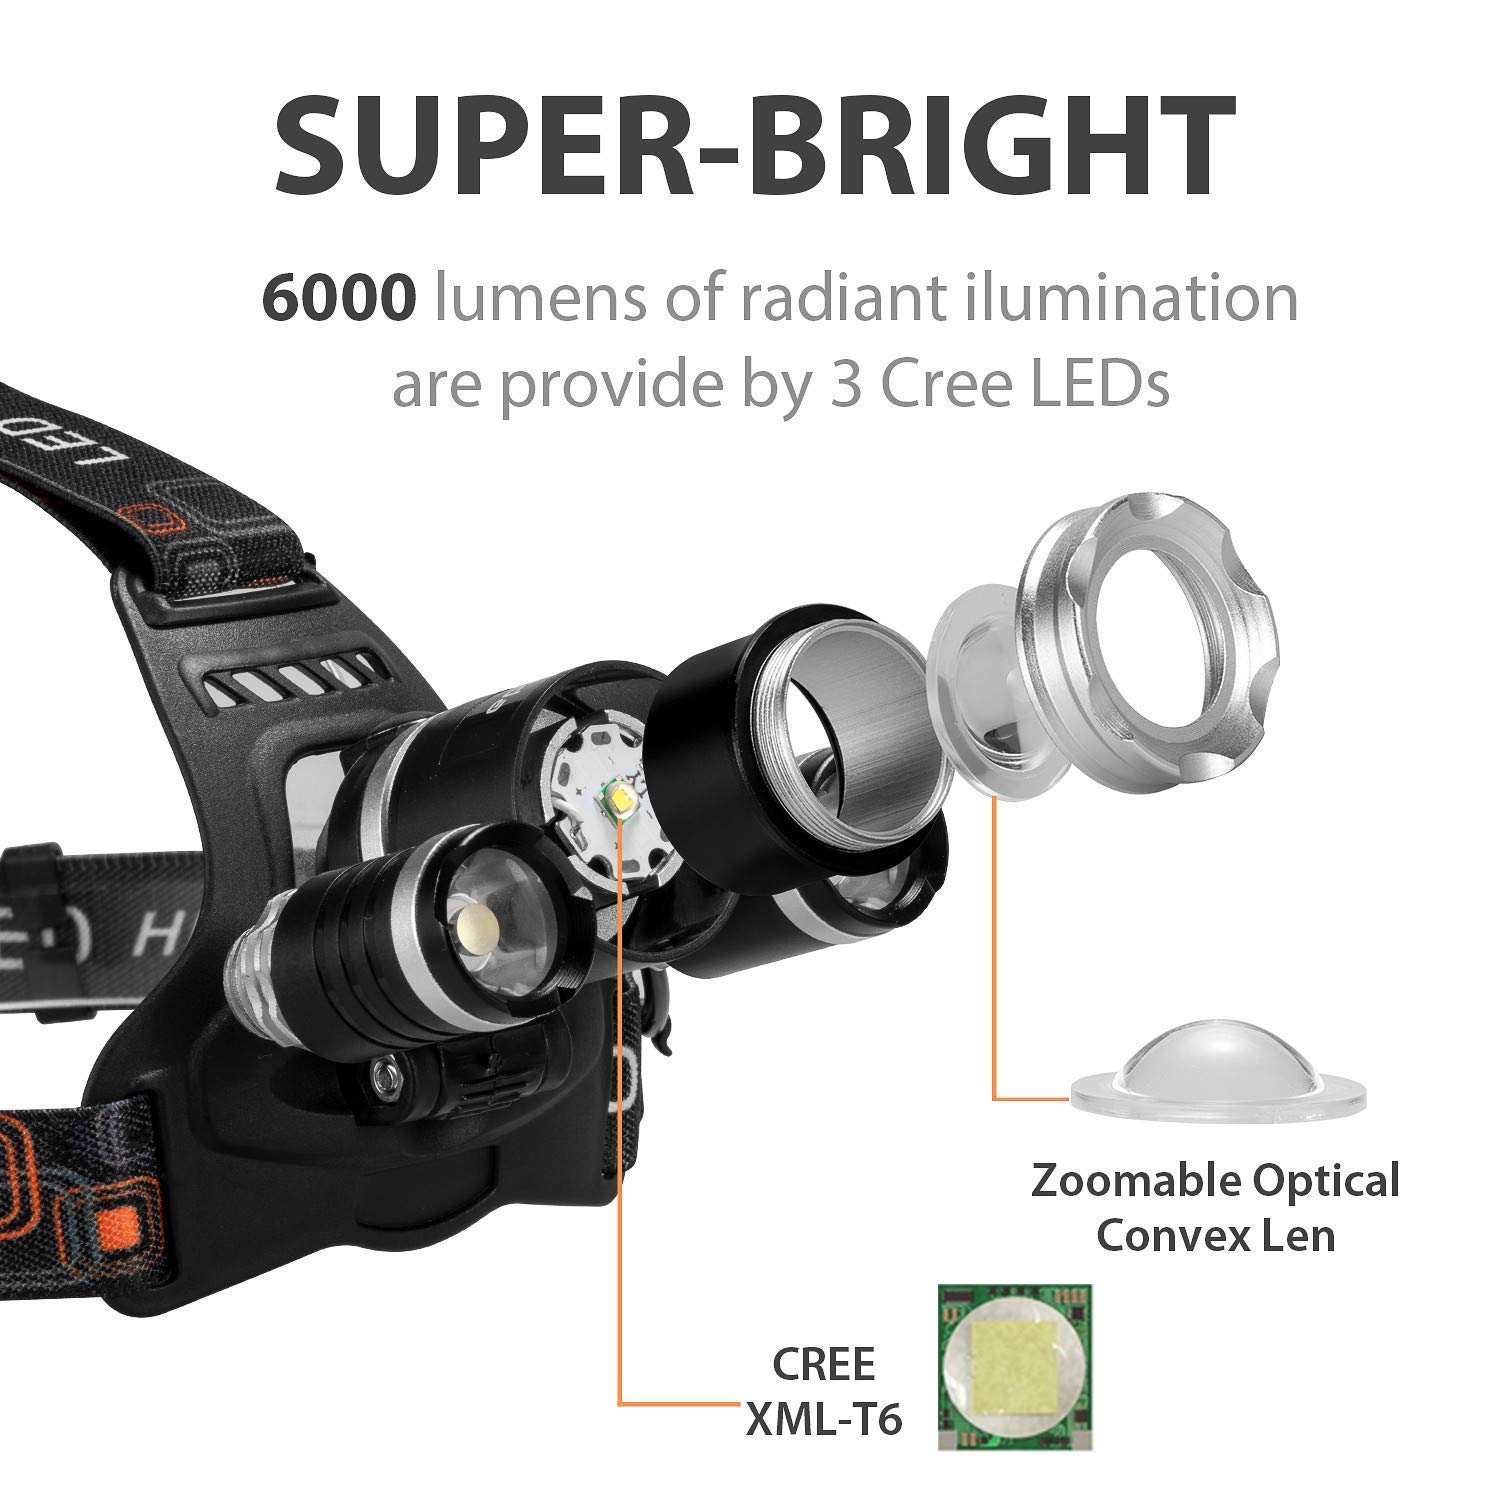 Brightest and Best LED Headlamp 9000 Lumen flashlight - Leading Technology CREE LED, Rechargeable 18650 headlight flashlights Waterproof Hard Hat Light,Outdoor & Indoor Fishing Camping headlamps by Ankeca (Image #2)